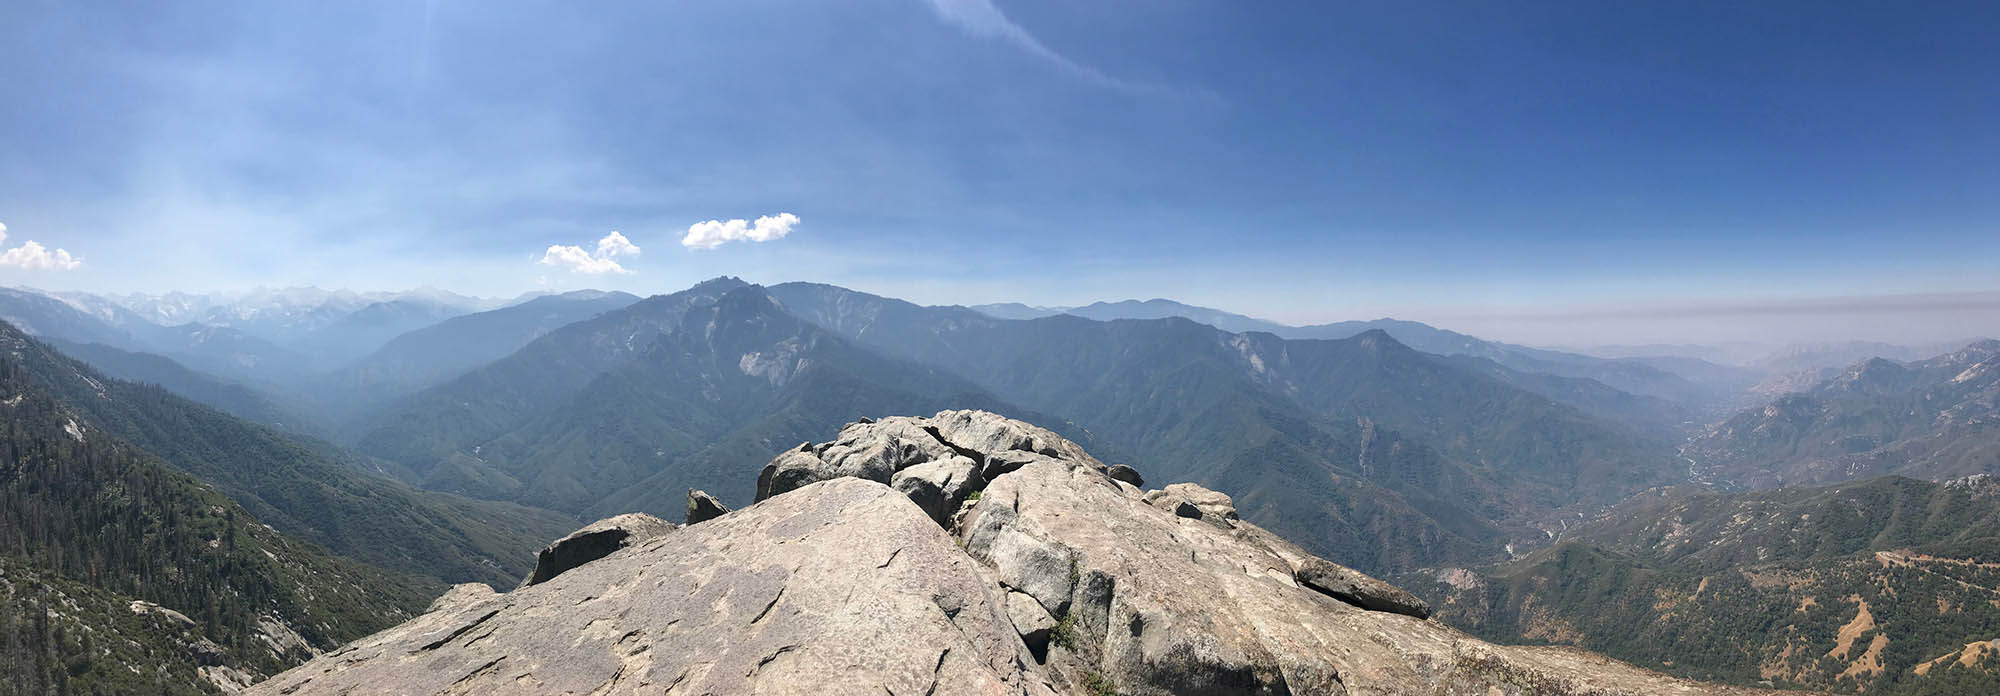 The view from Moro Rock, Sequoia National Park